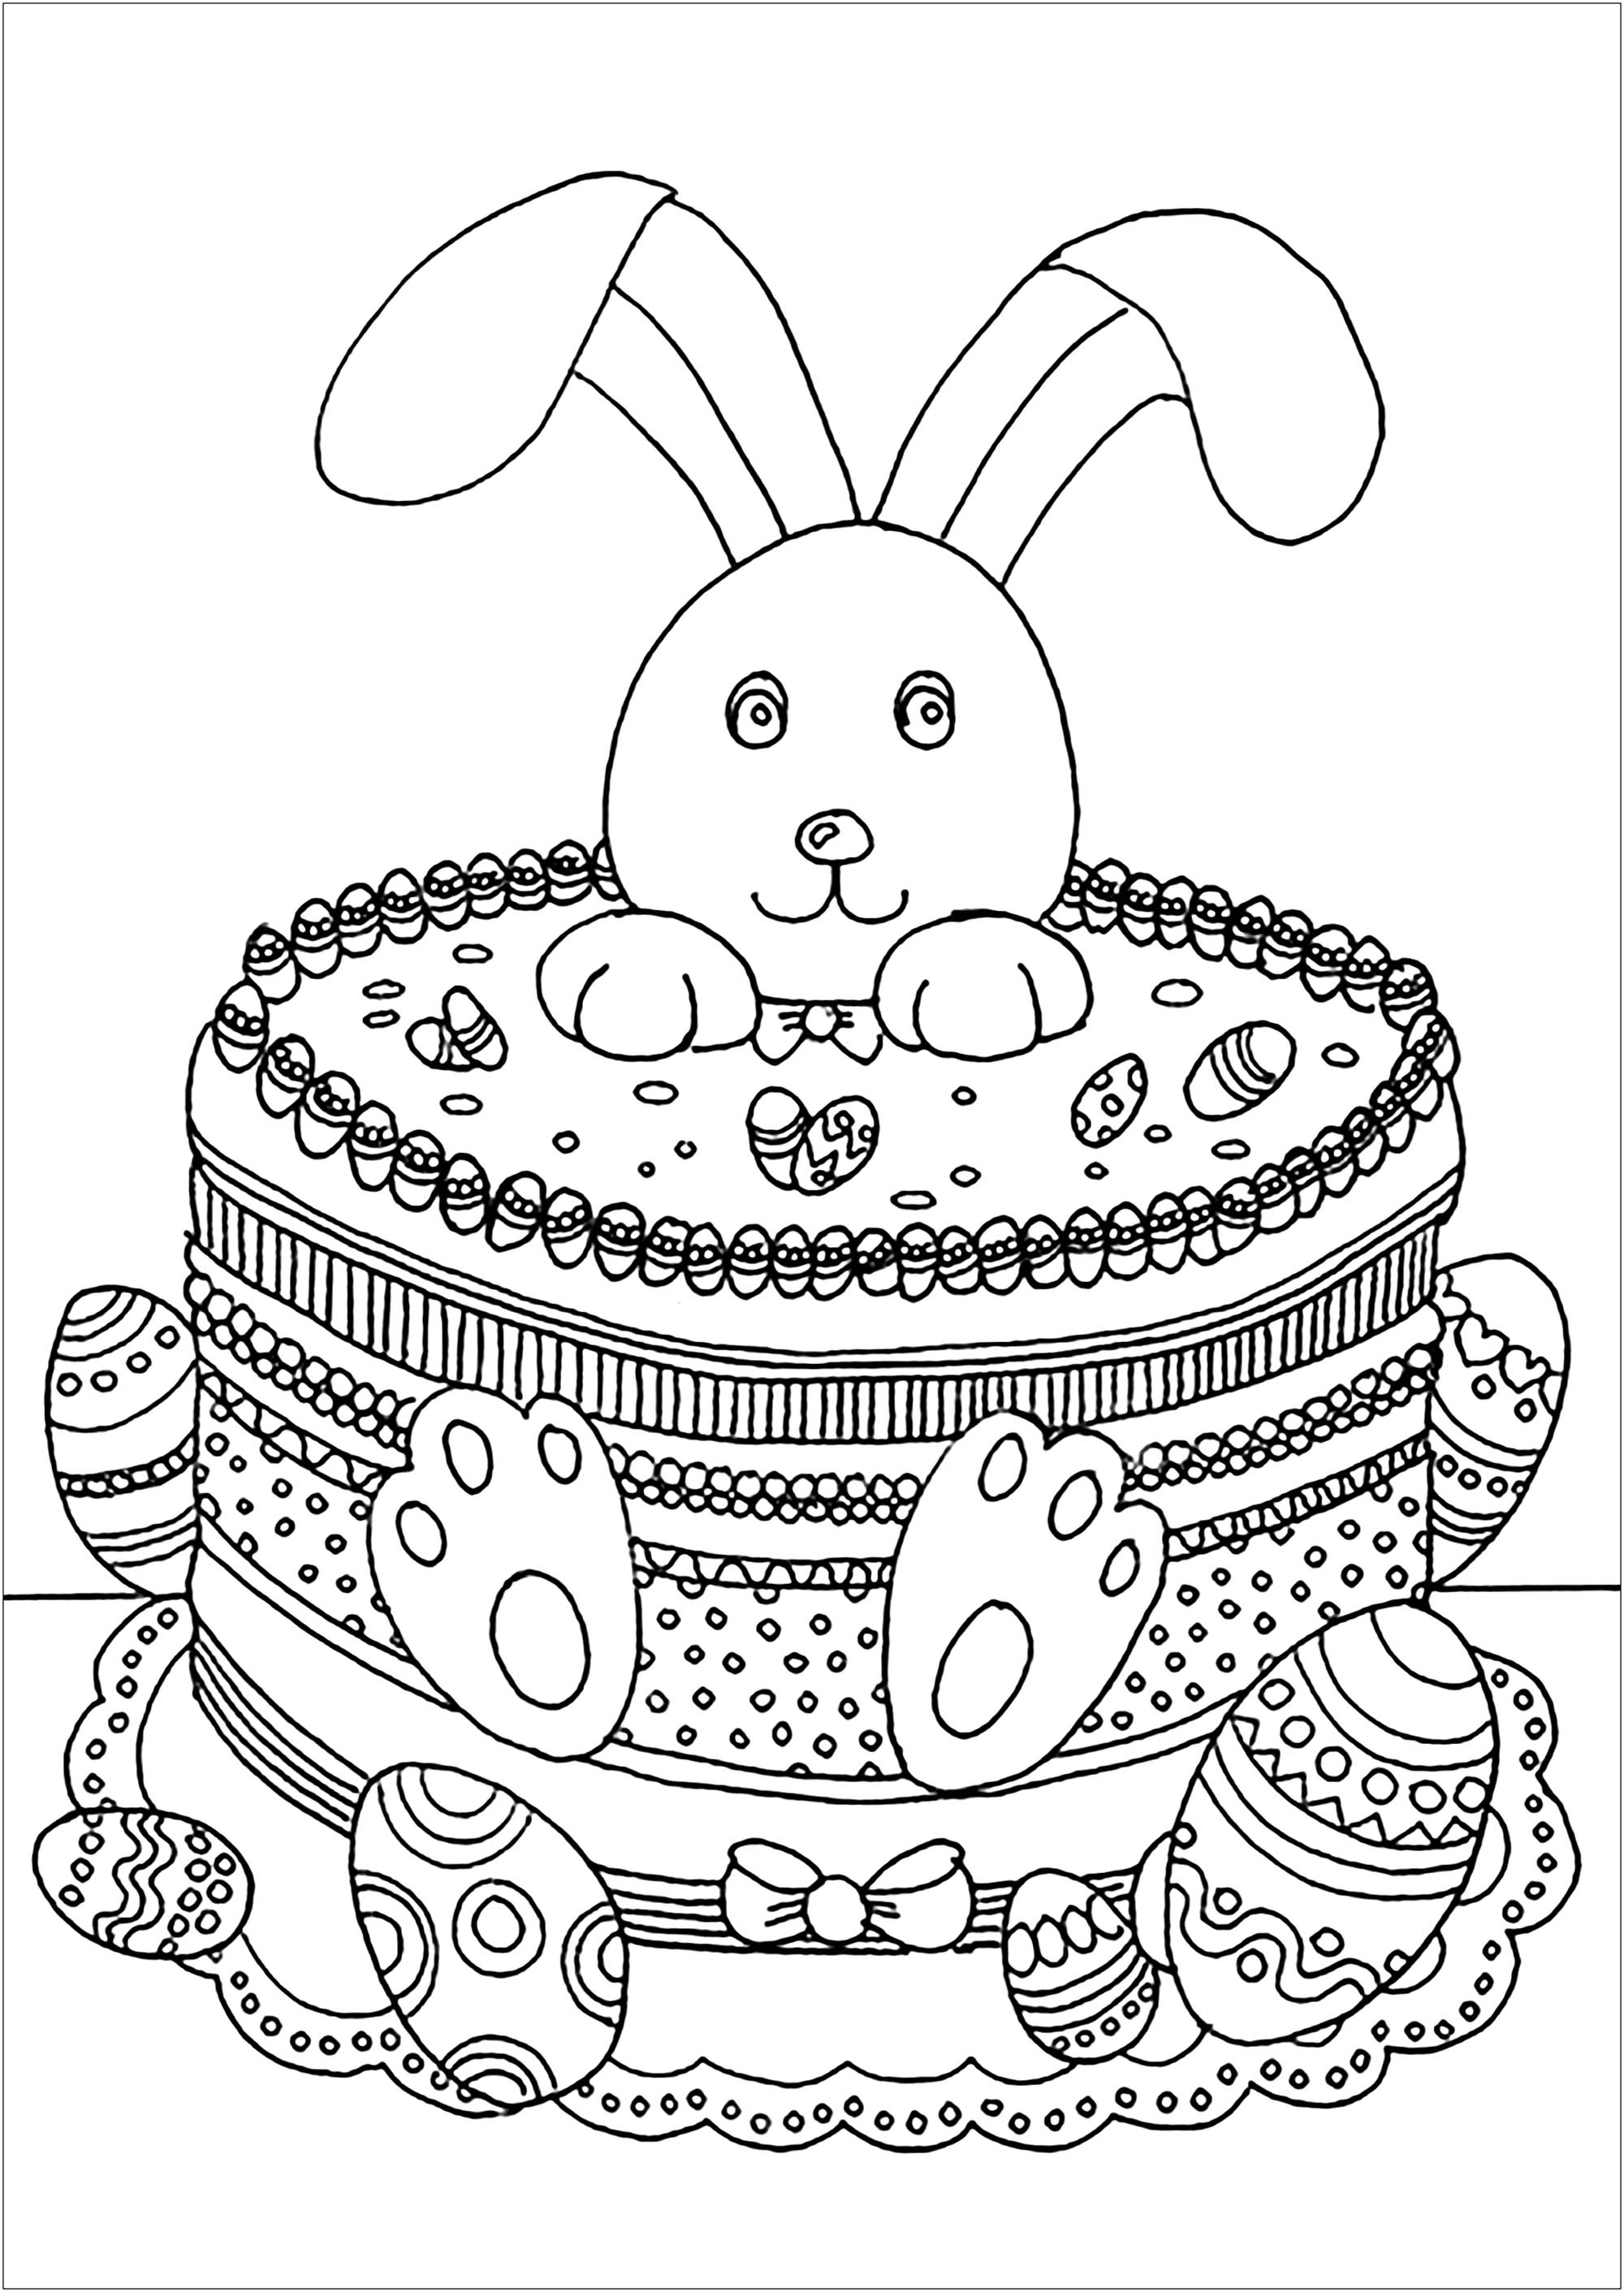 Funny easter rabbit in a cake, with eggs to color